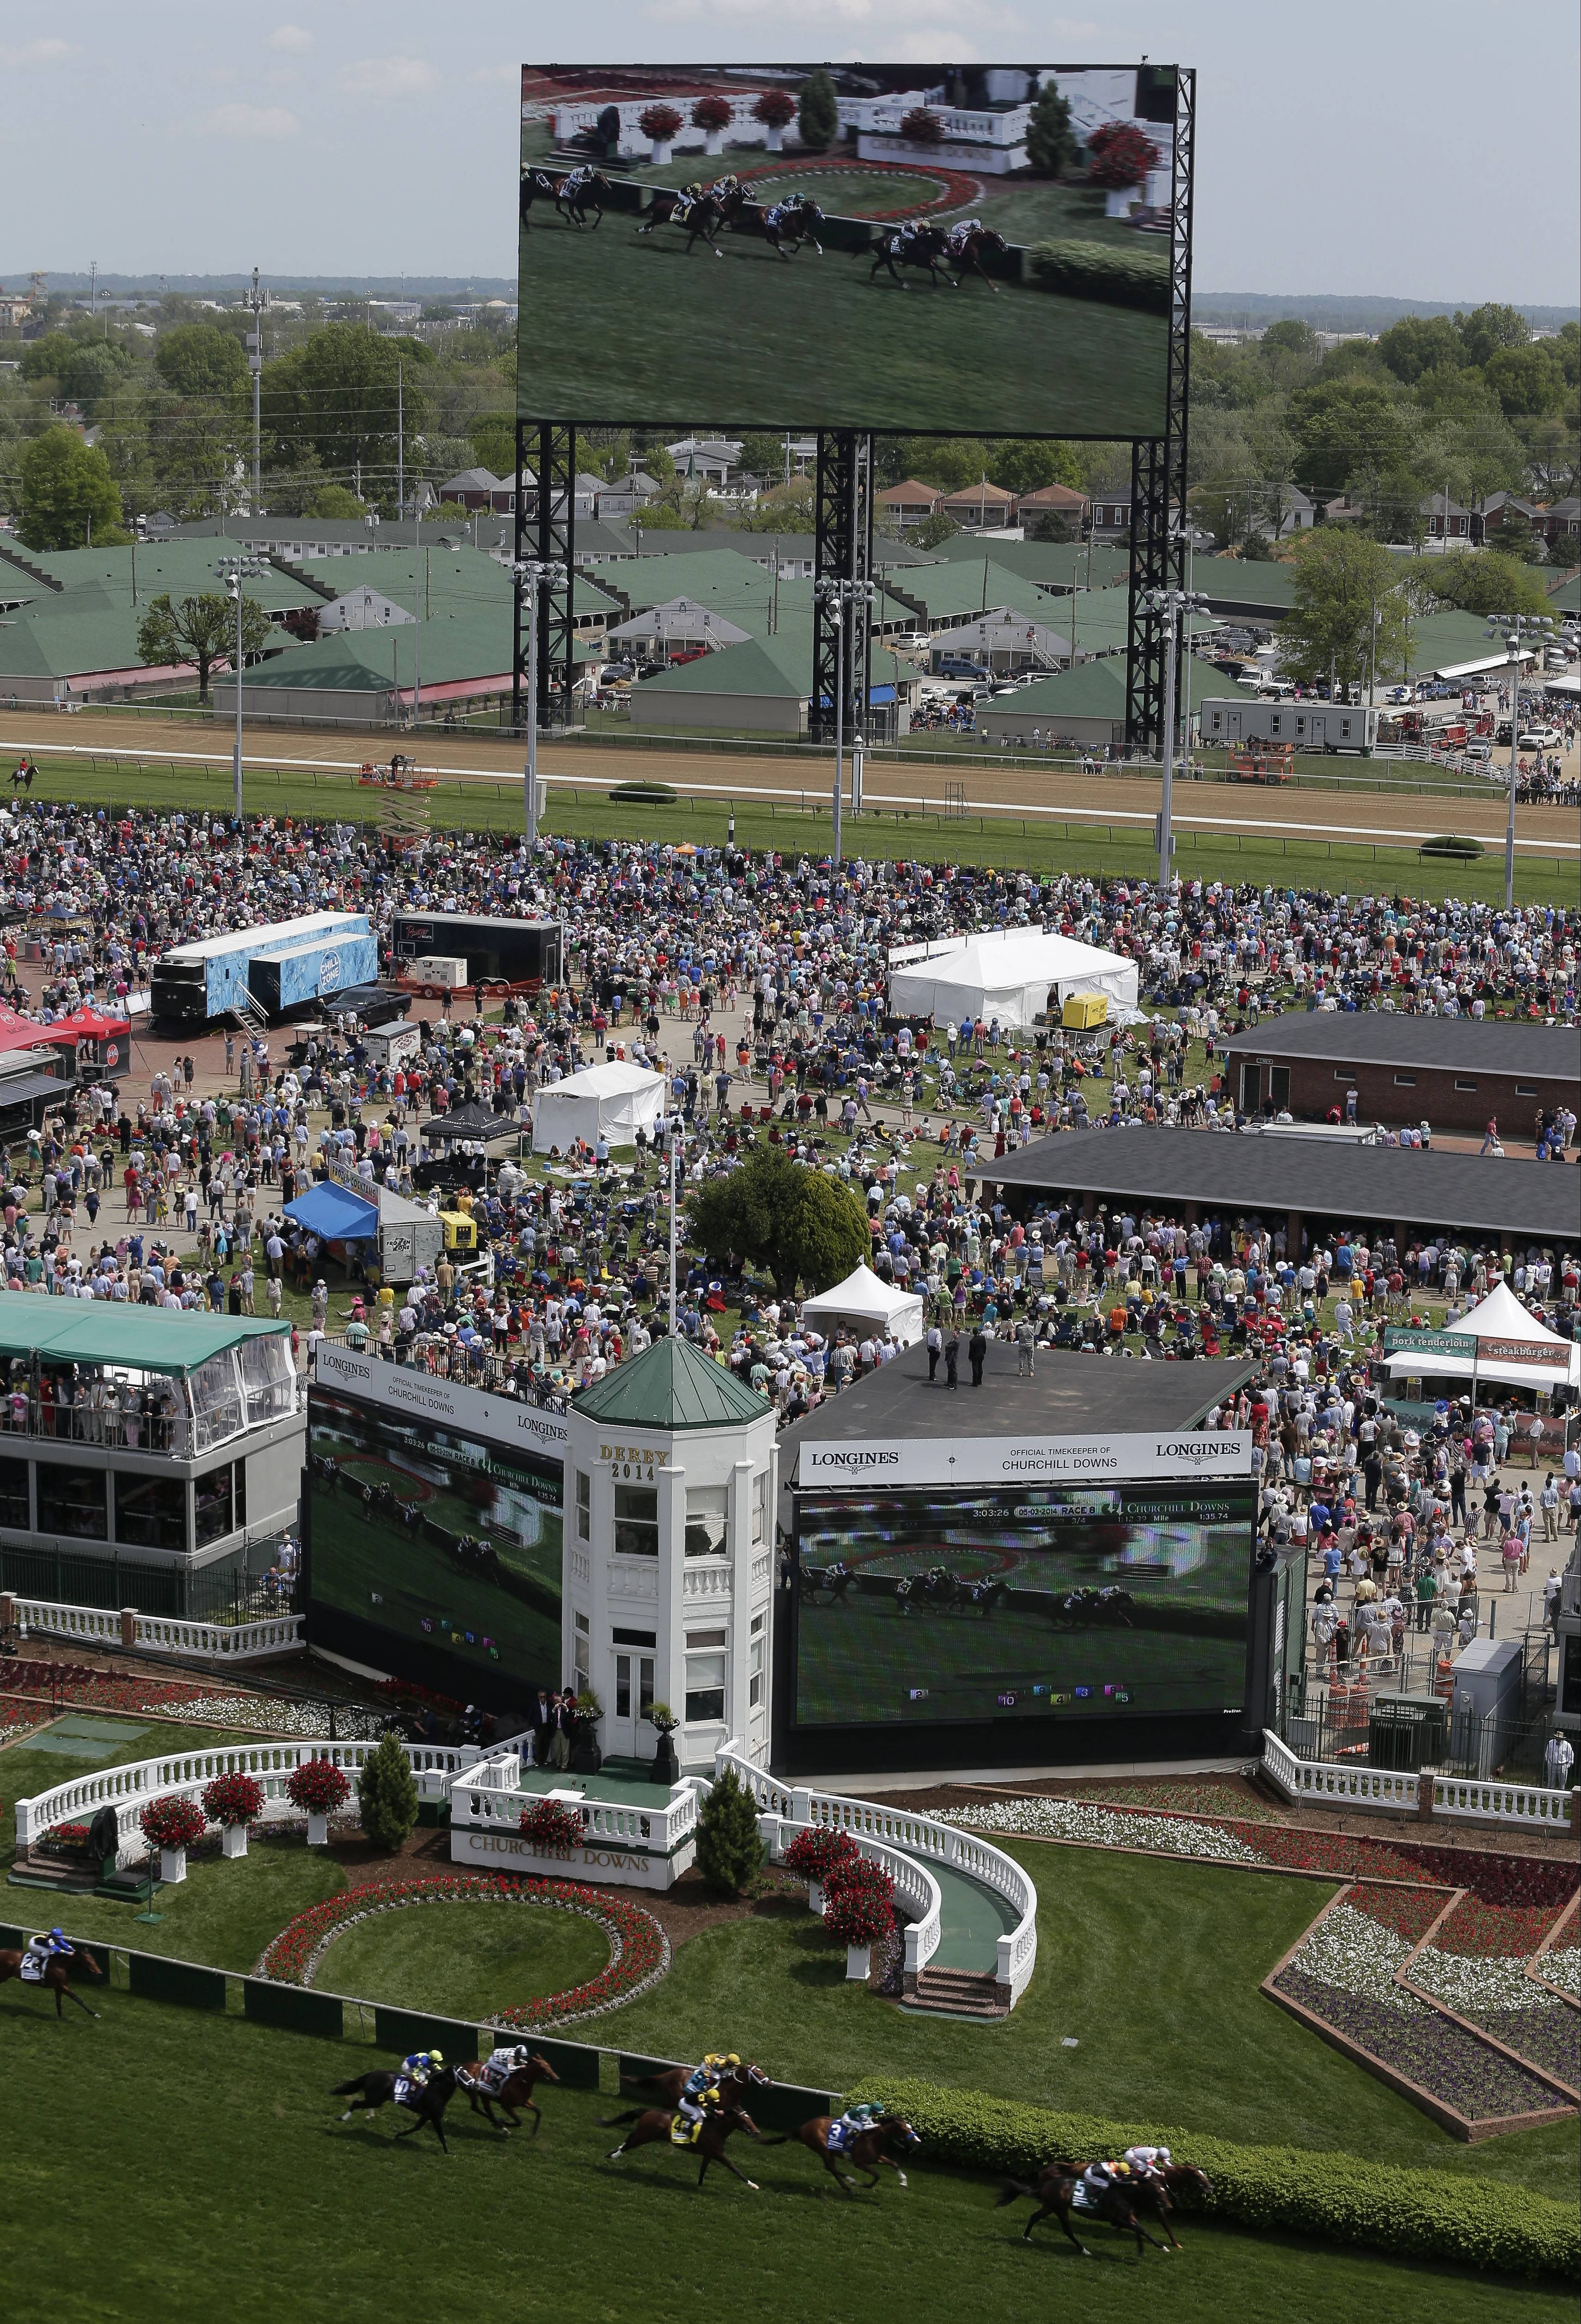 Fans watch a race on a large video screen Saturday before the 140th running of the Kentucky Derby horse race at Churchill Downs.